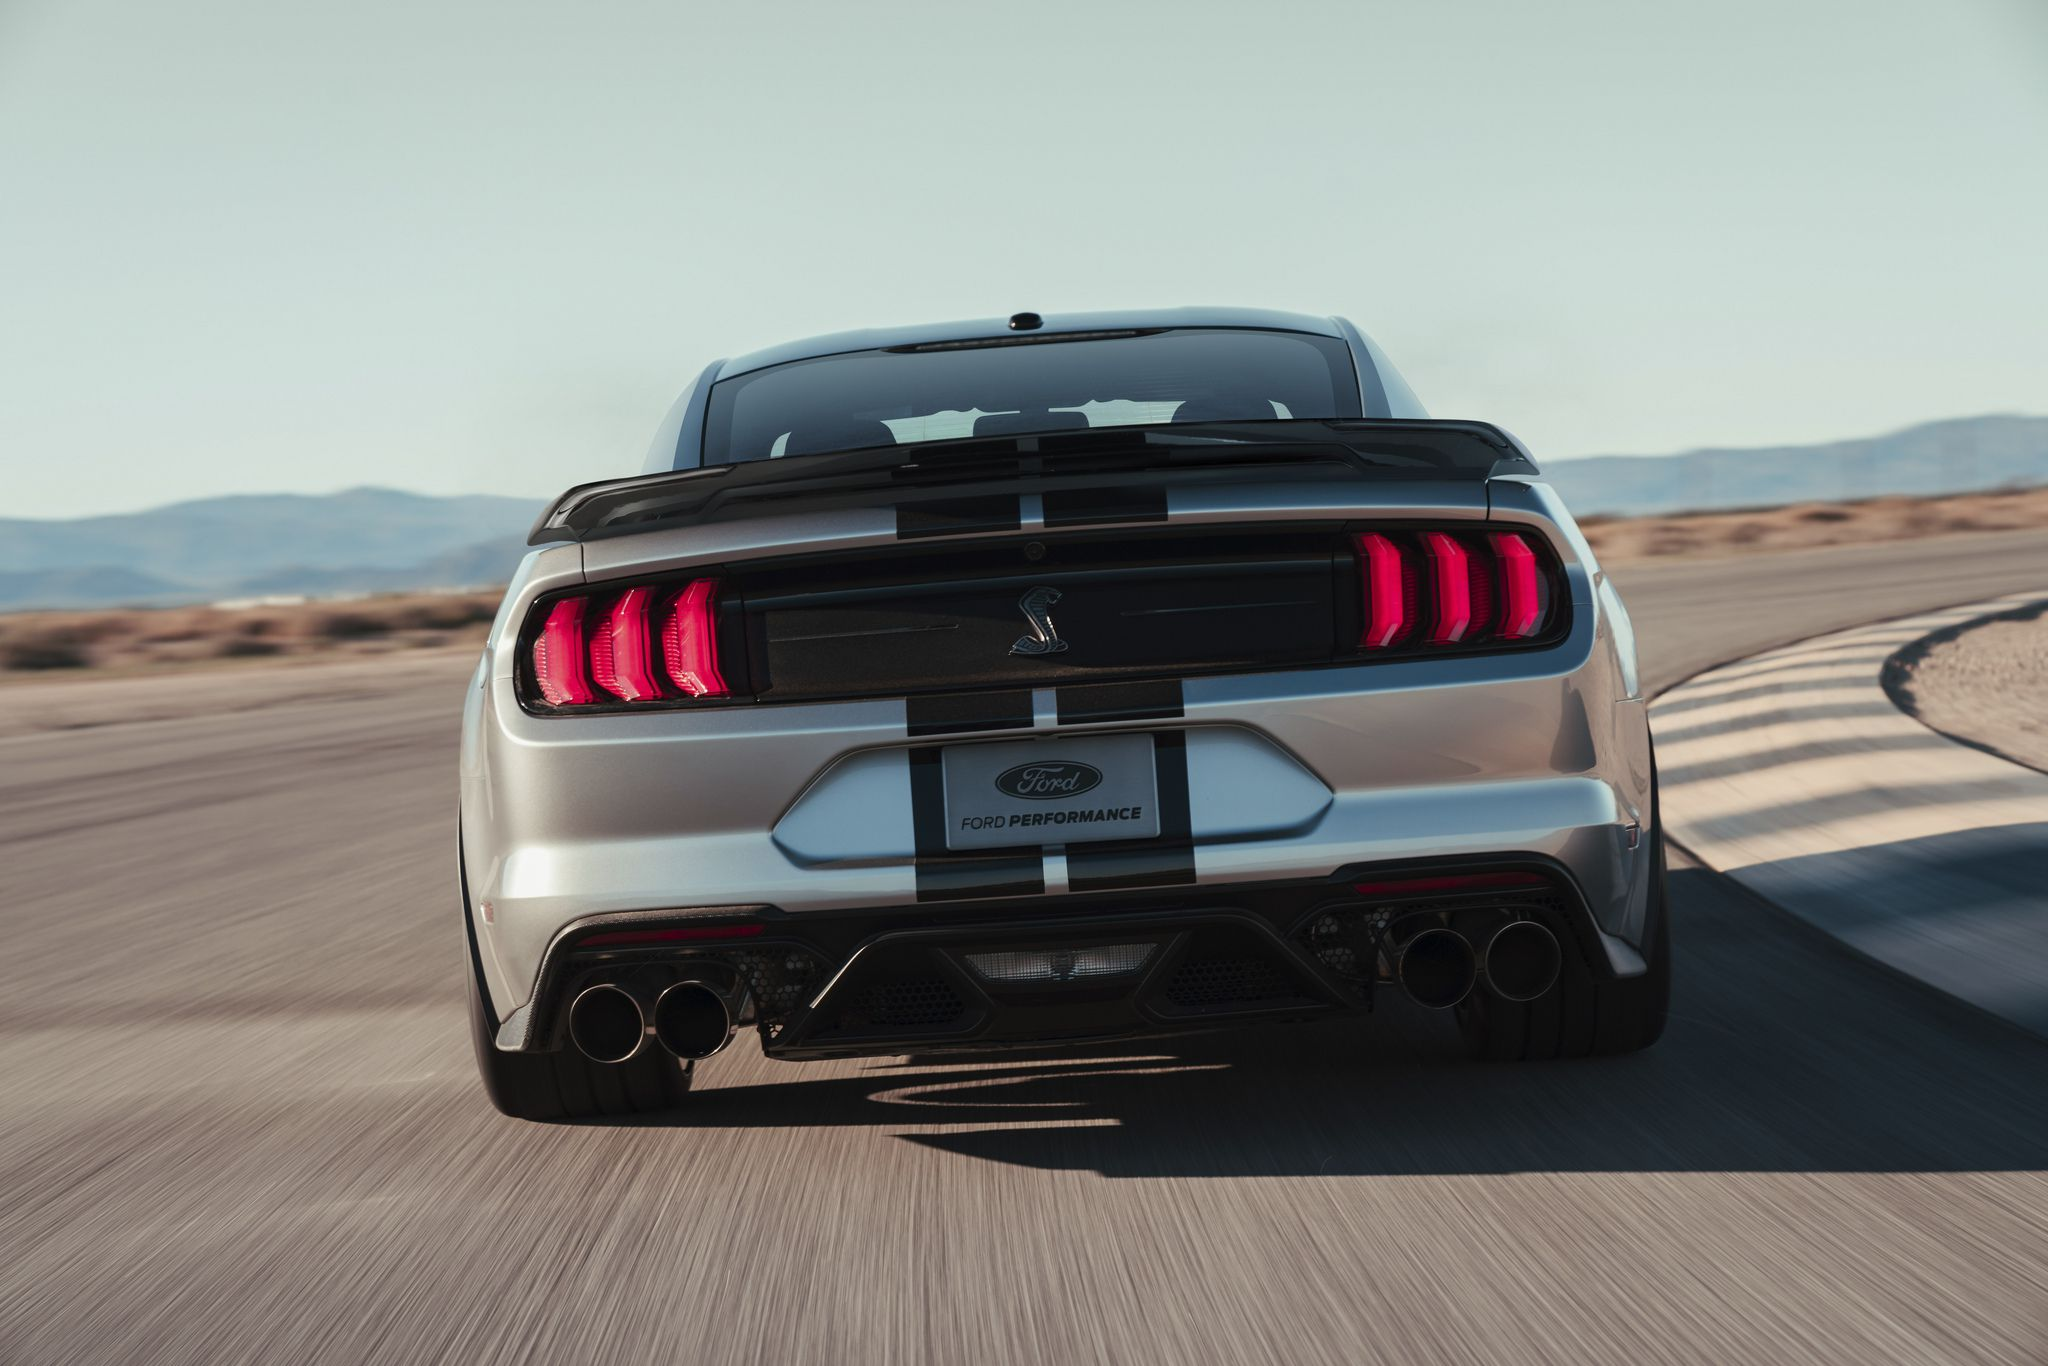 2020 Ford Mustang Shelby GT500 - rear view